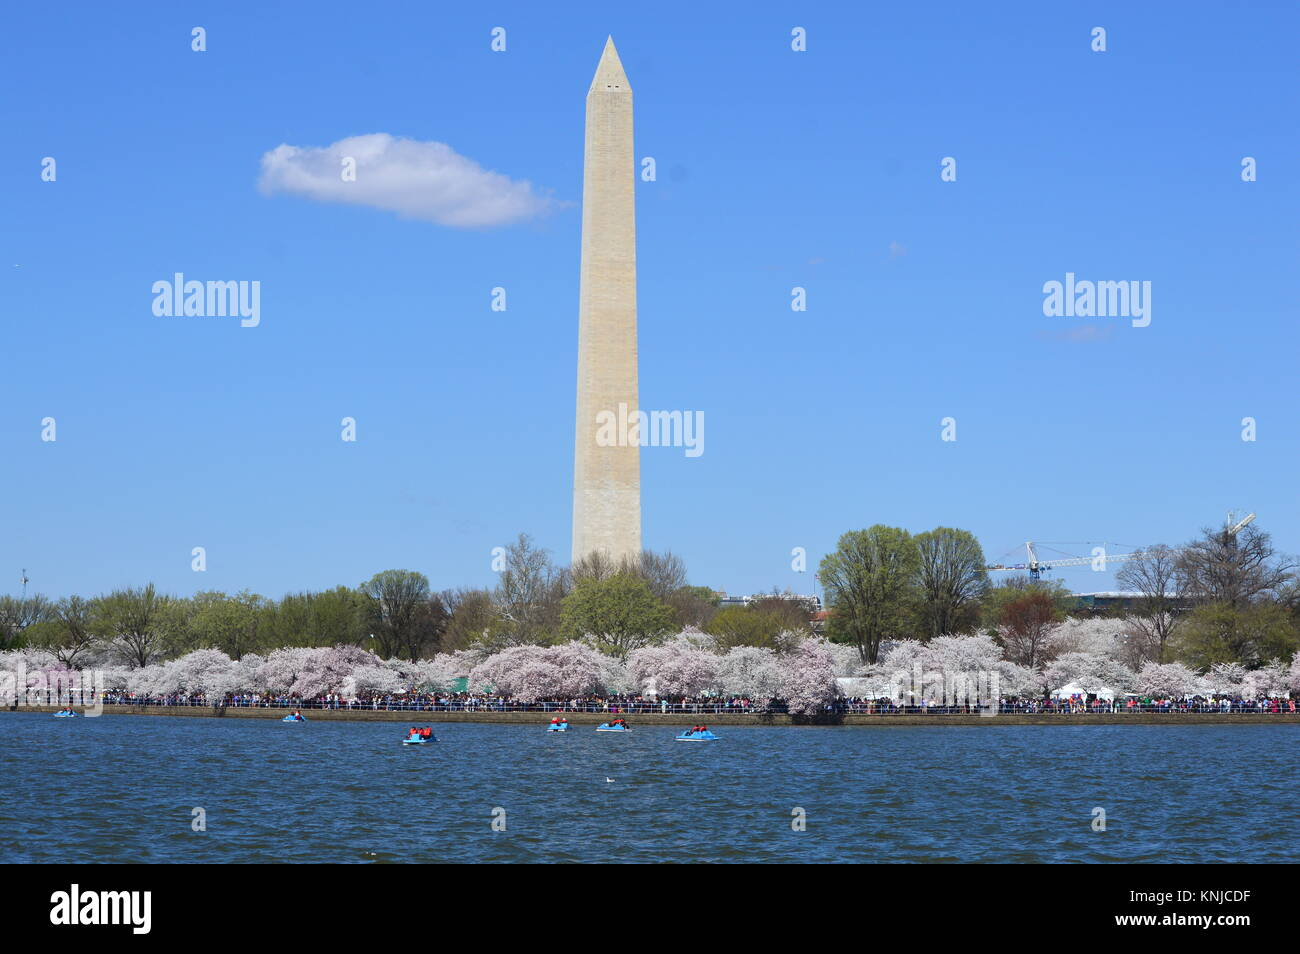 Washignton DC, Columbia, USA - April 11, 2015: Washington Monument & Cherry Blossom - Stock Image